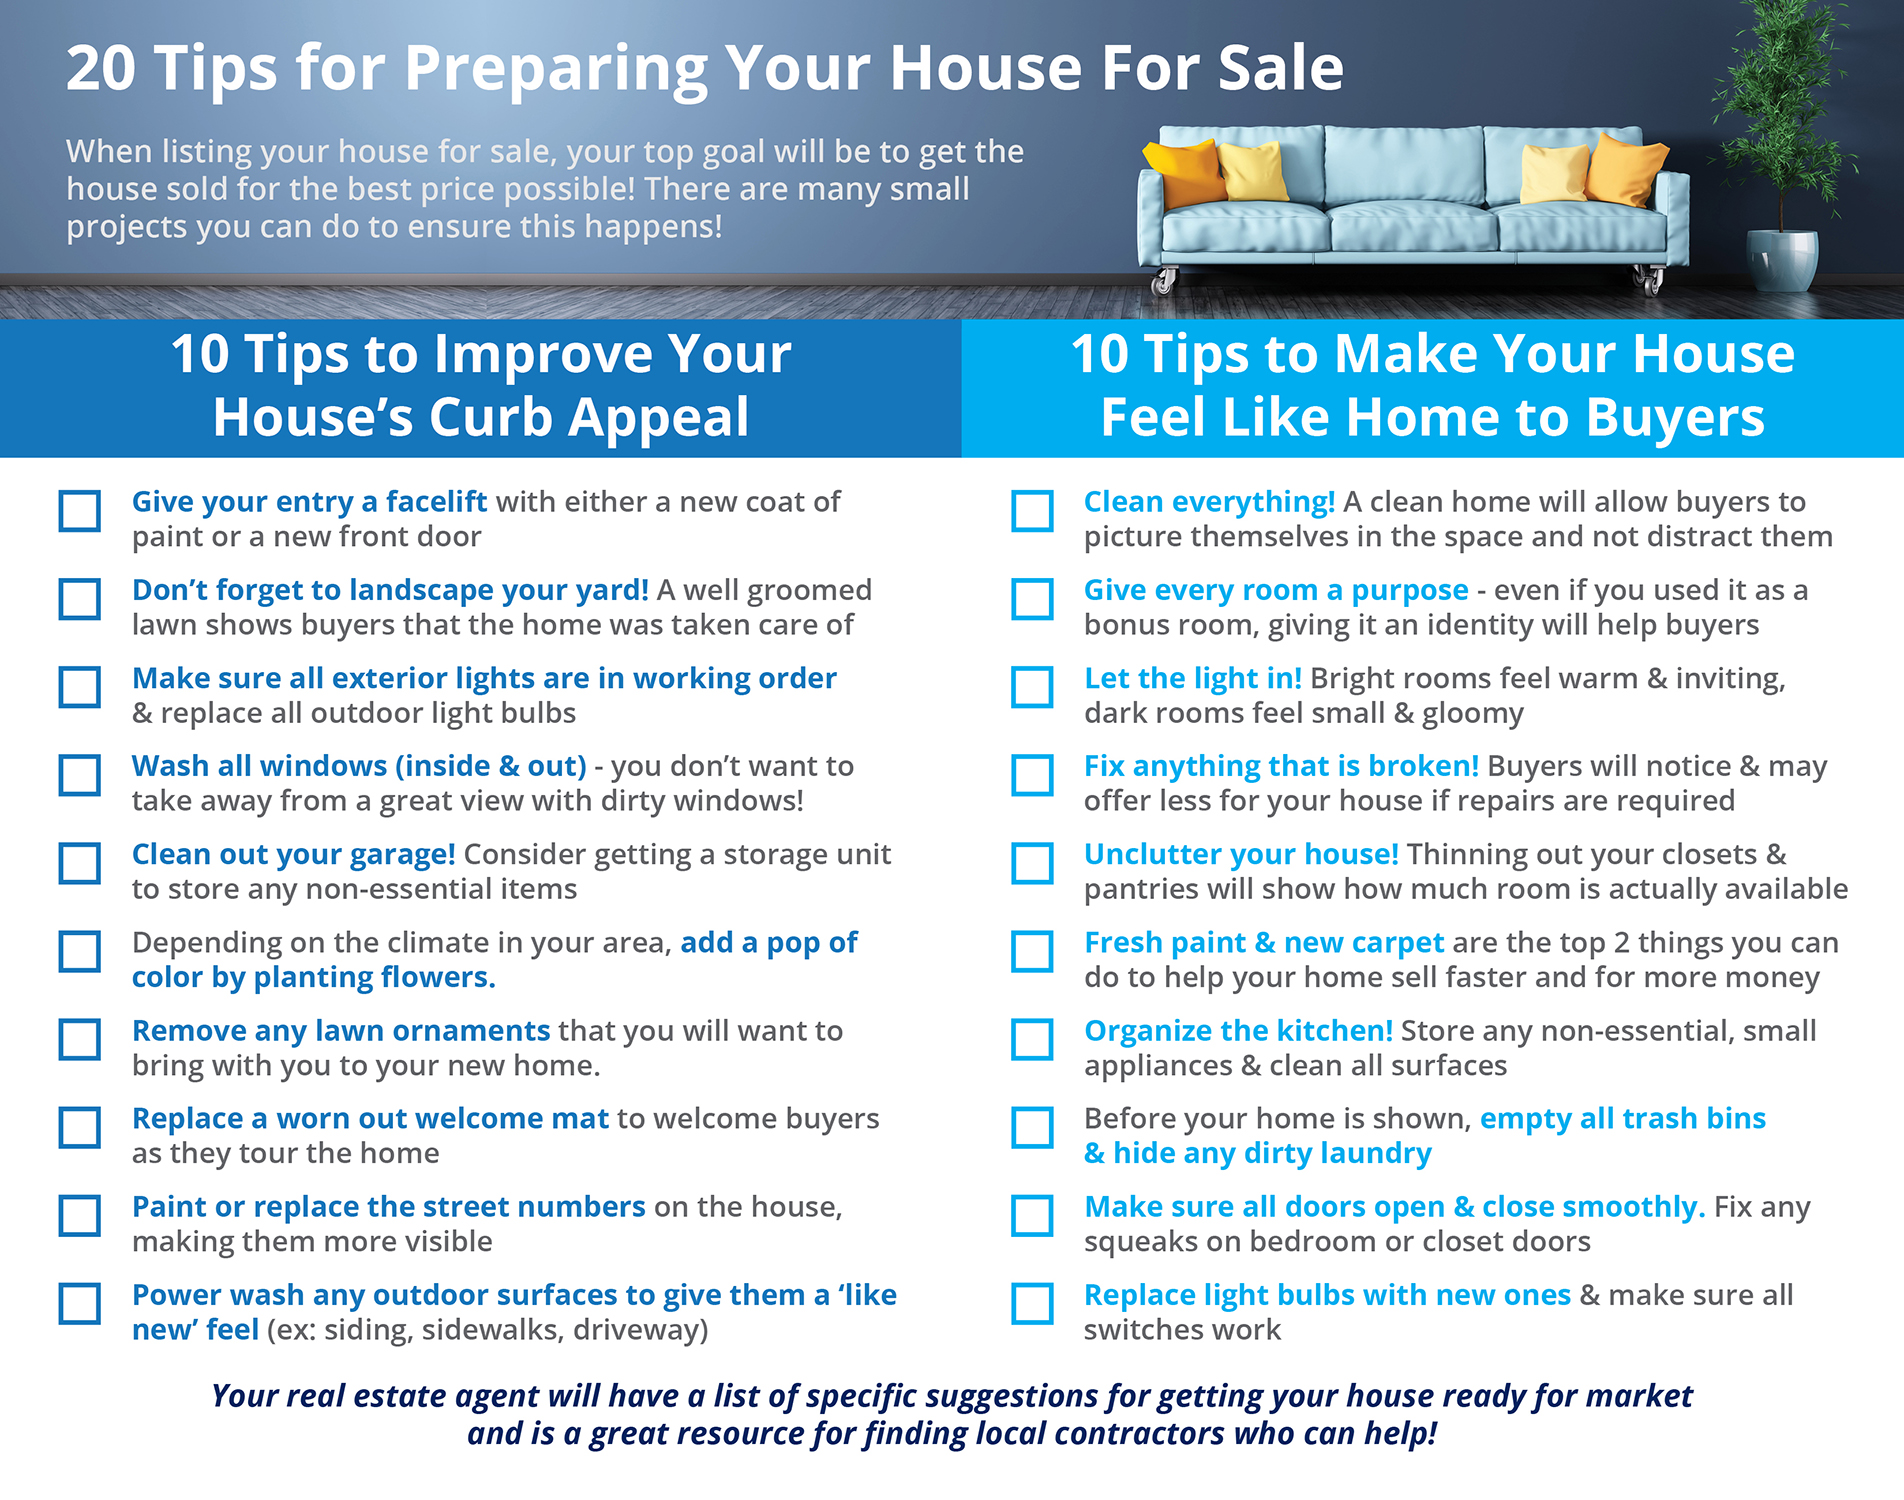 20 Tips for Preparing Your House for Sale This Fall  | Simplifying The Market